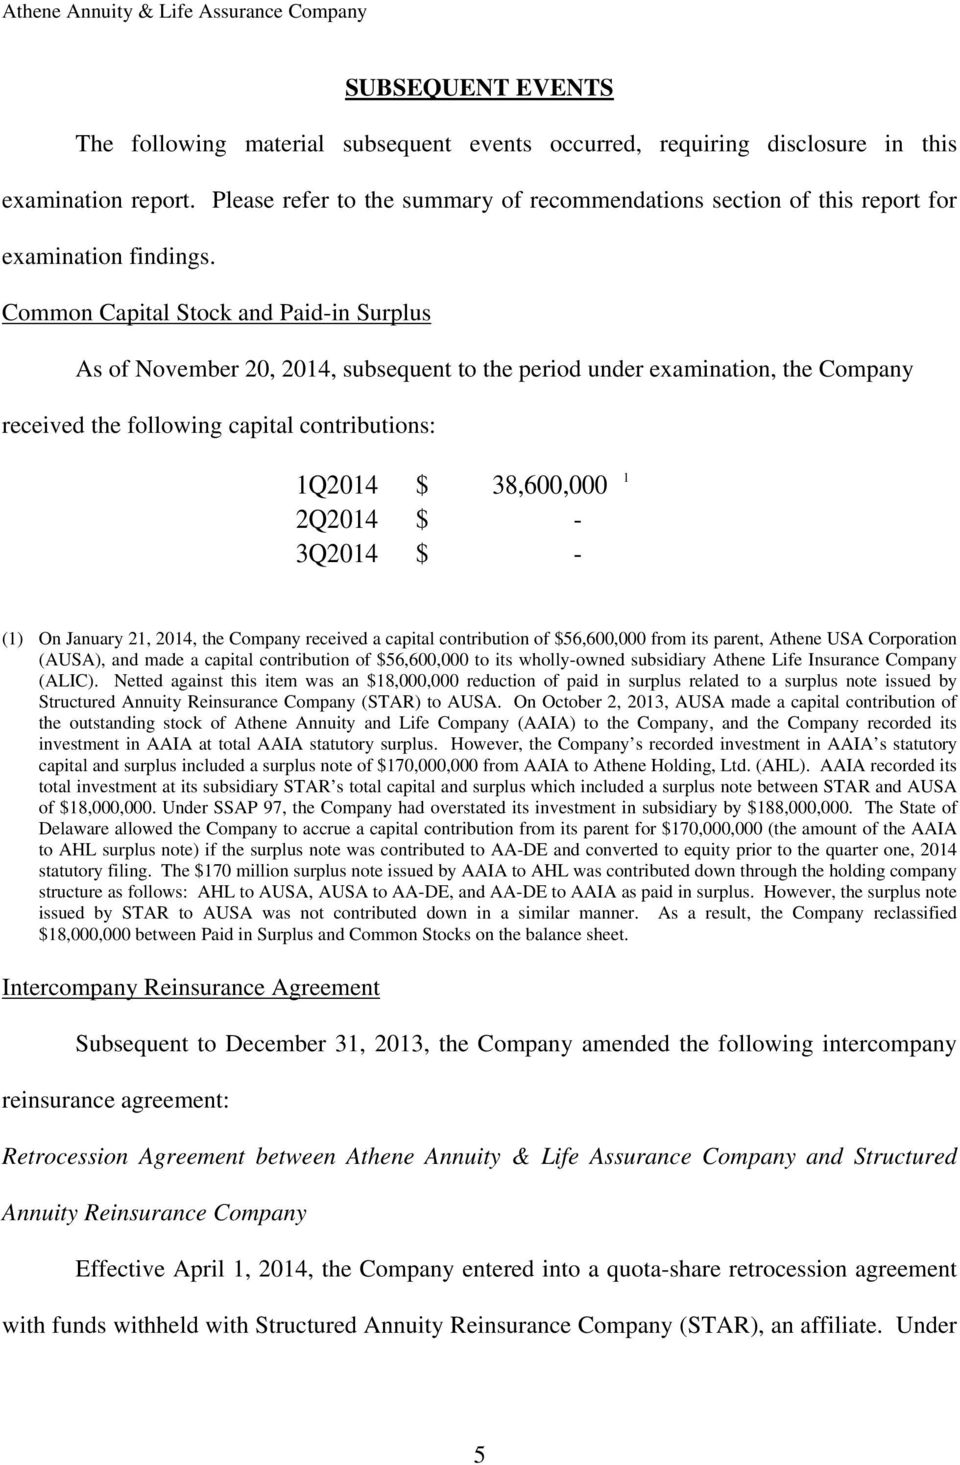 Common Capital Stock and Paid-in Surplus As of November 20, 2014, subsequent to the period under examination, the Company received the following capital contributions: 1Q2014 $ 38,600,000 2Q2014 $ -